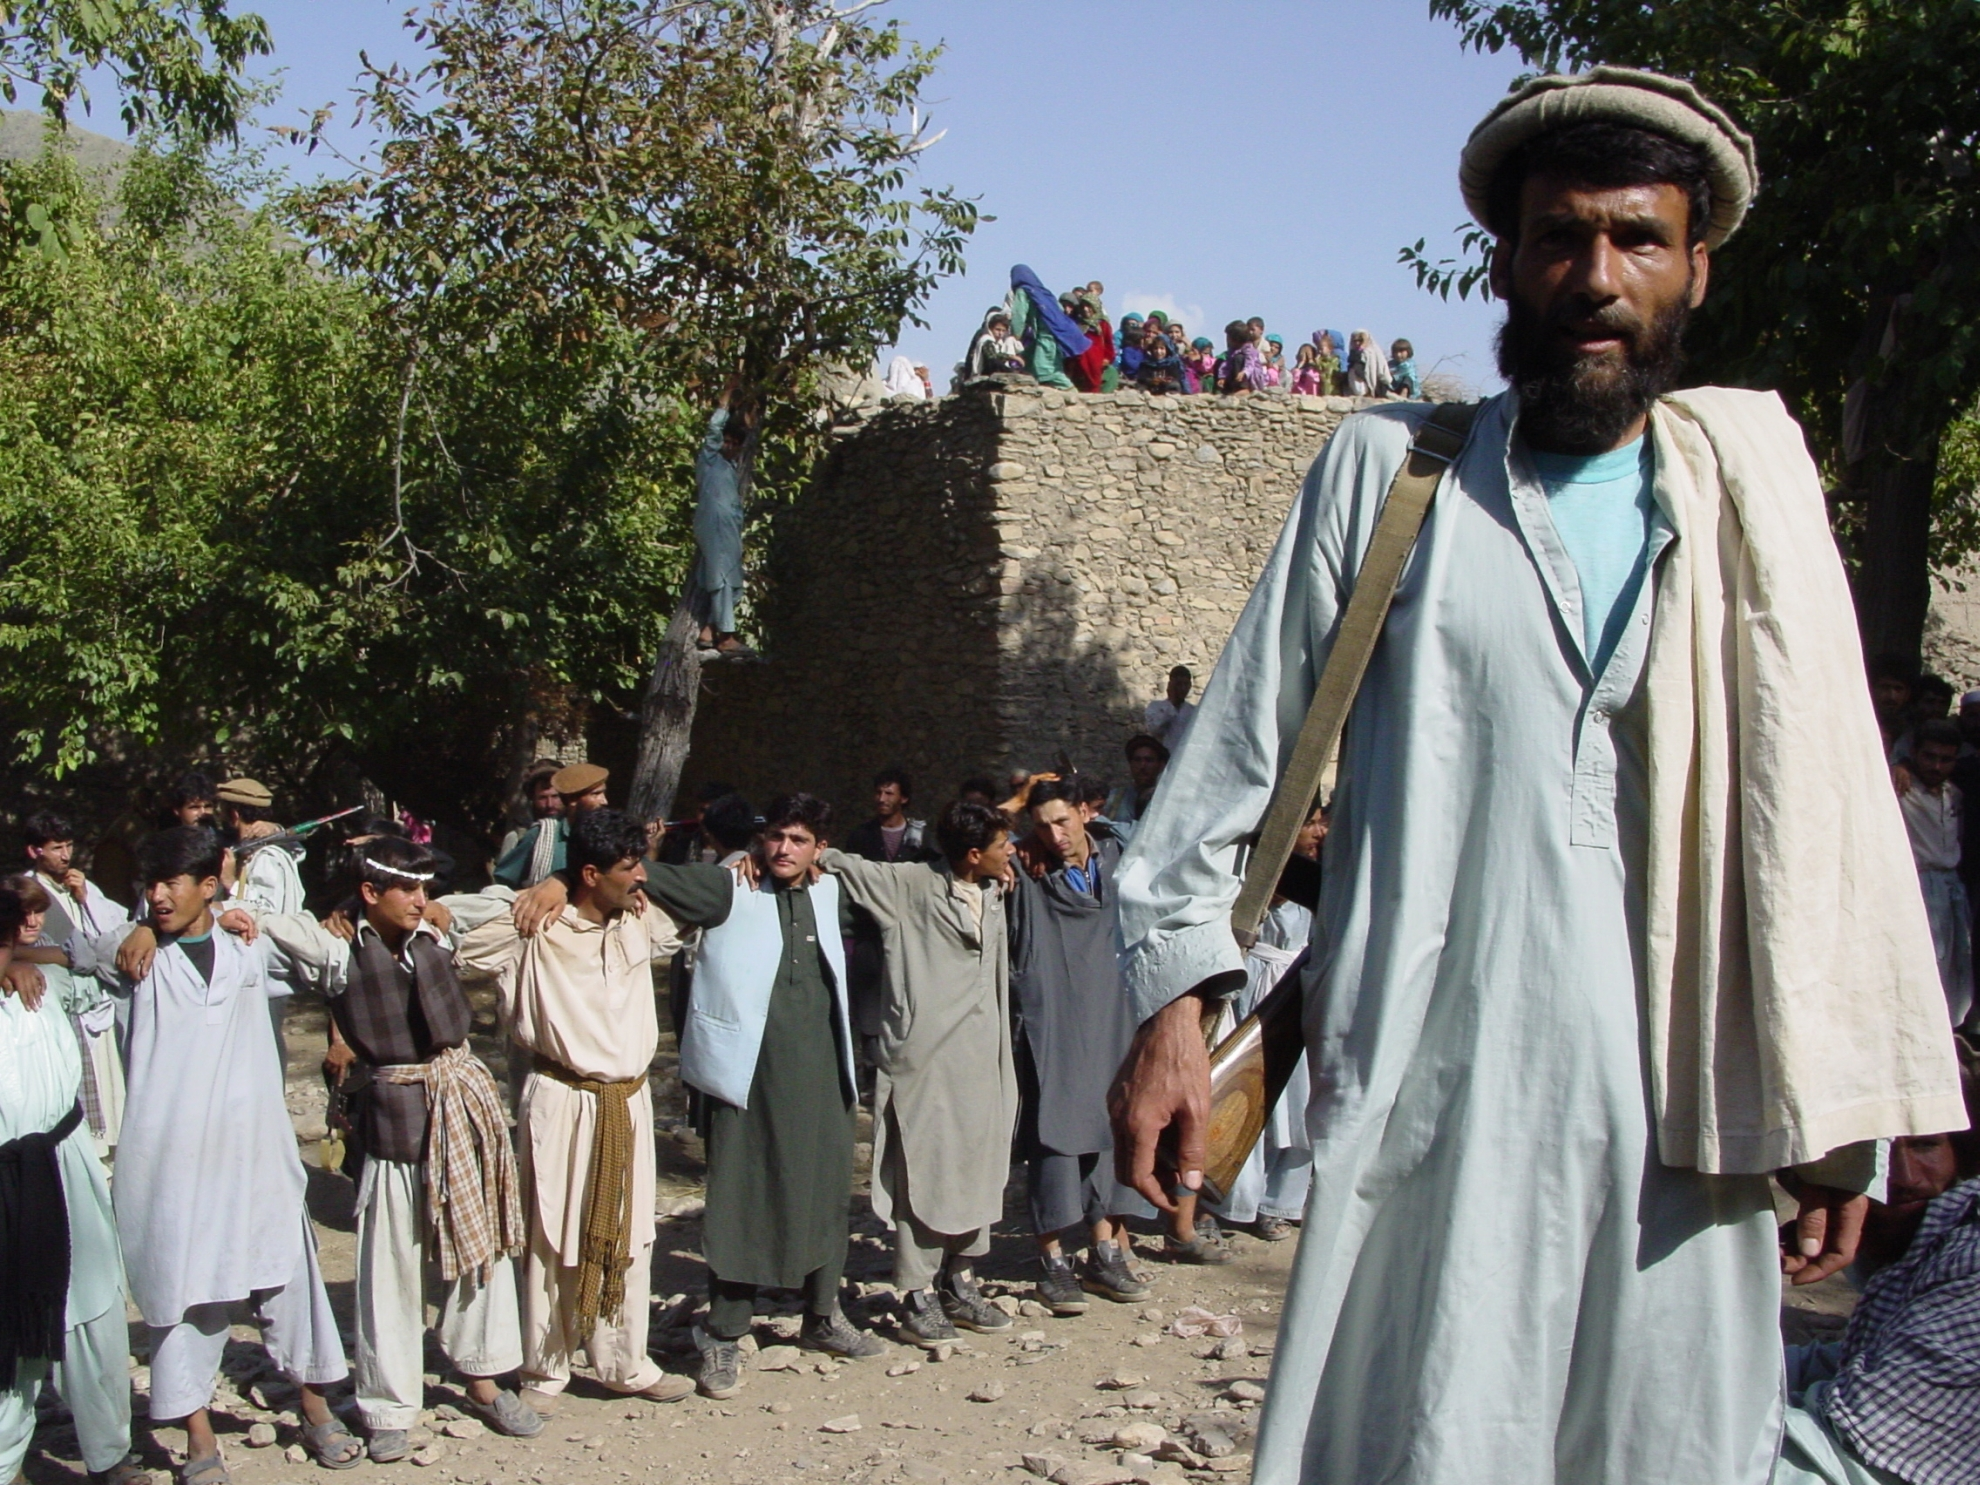 Men and women are segregated during Afghan weddings. Here, the women may be discerned on the roof in the background, from where they can watch the men dancing. The photographer was not allowed into the women's part of the celebrations. Photo: Jens Kjær Jensen, 2003